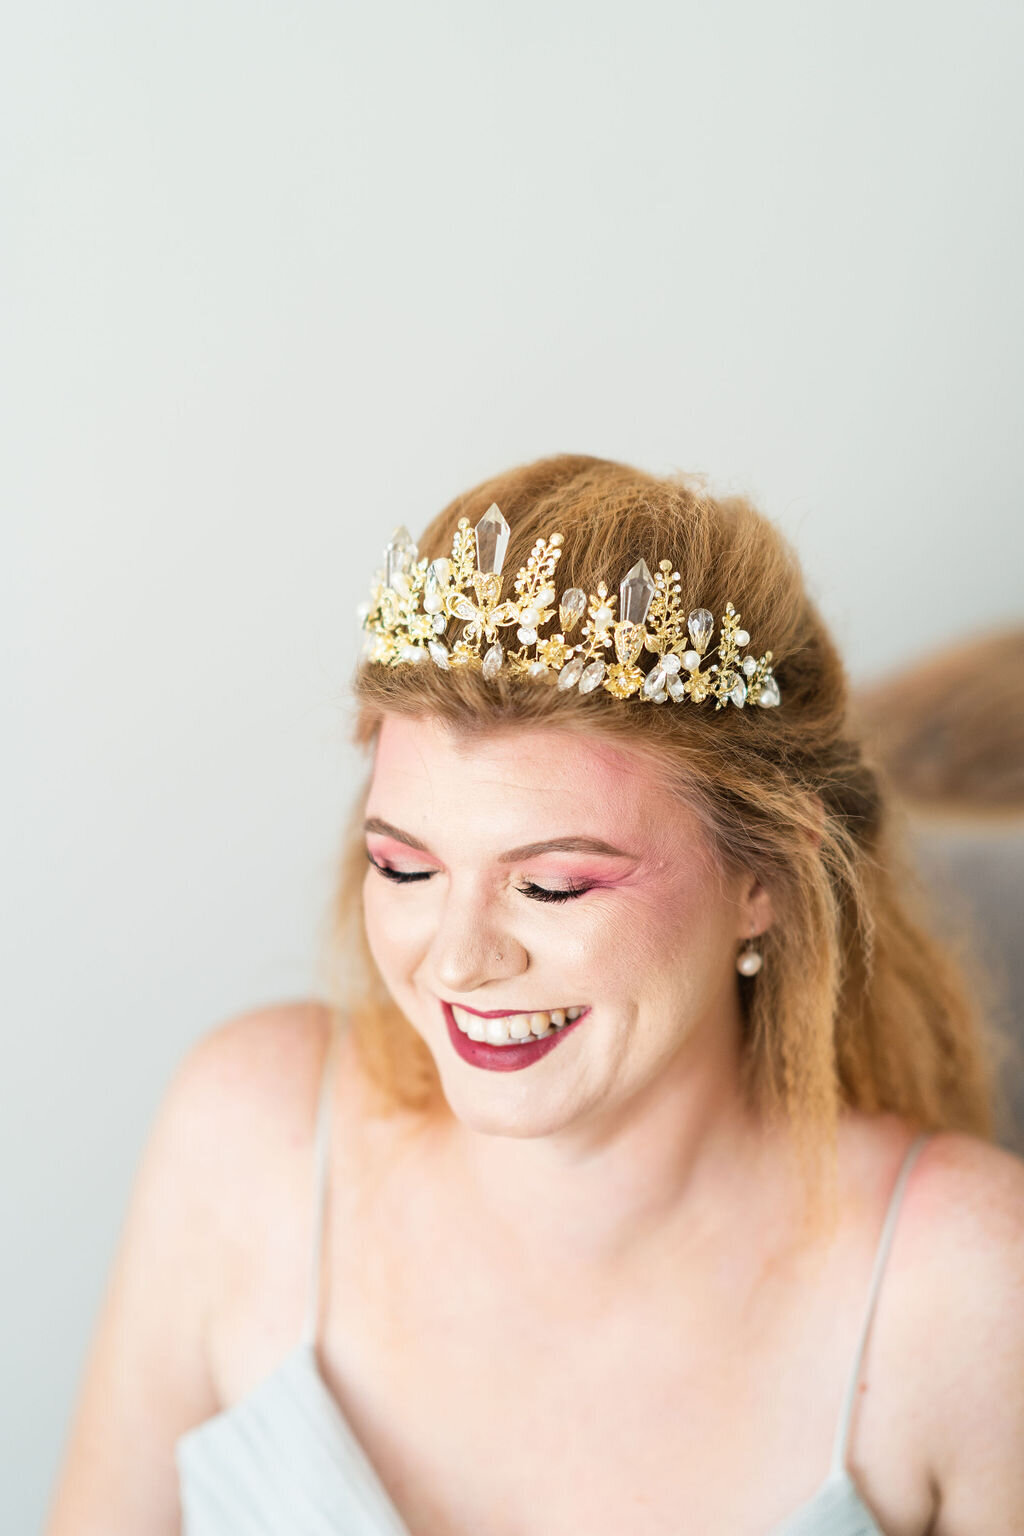 Wedding Hair and Makeup Services in Northern Virginia